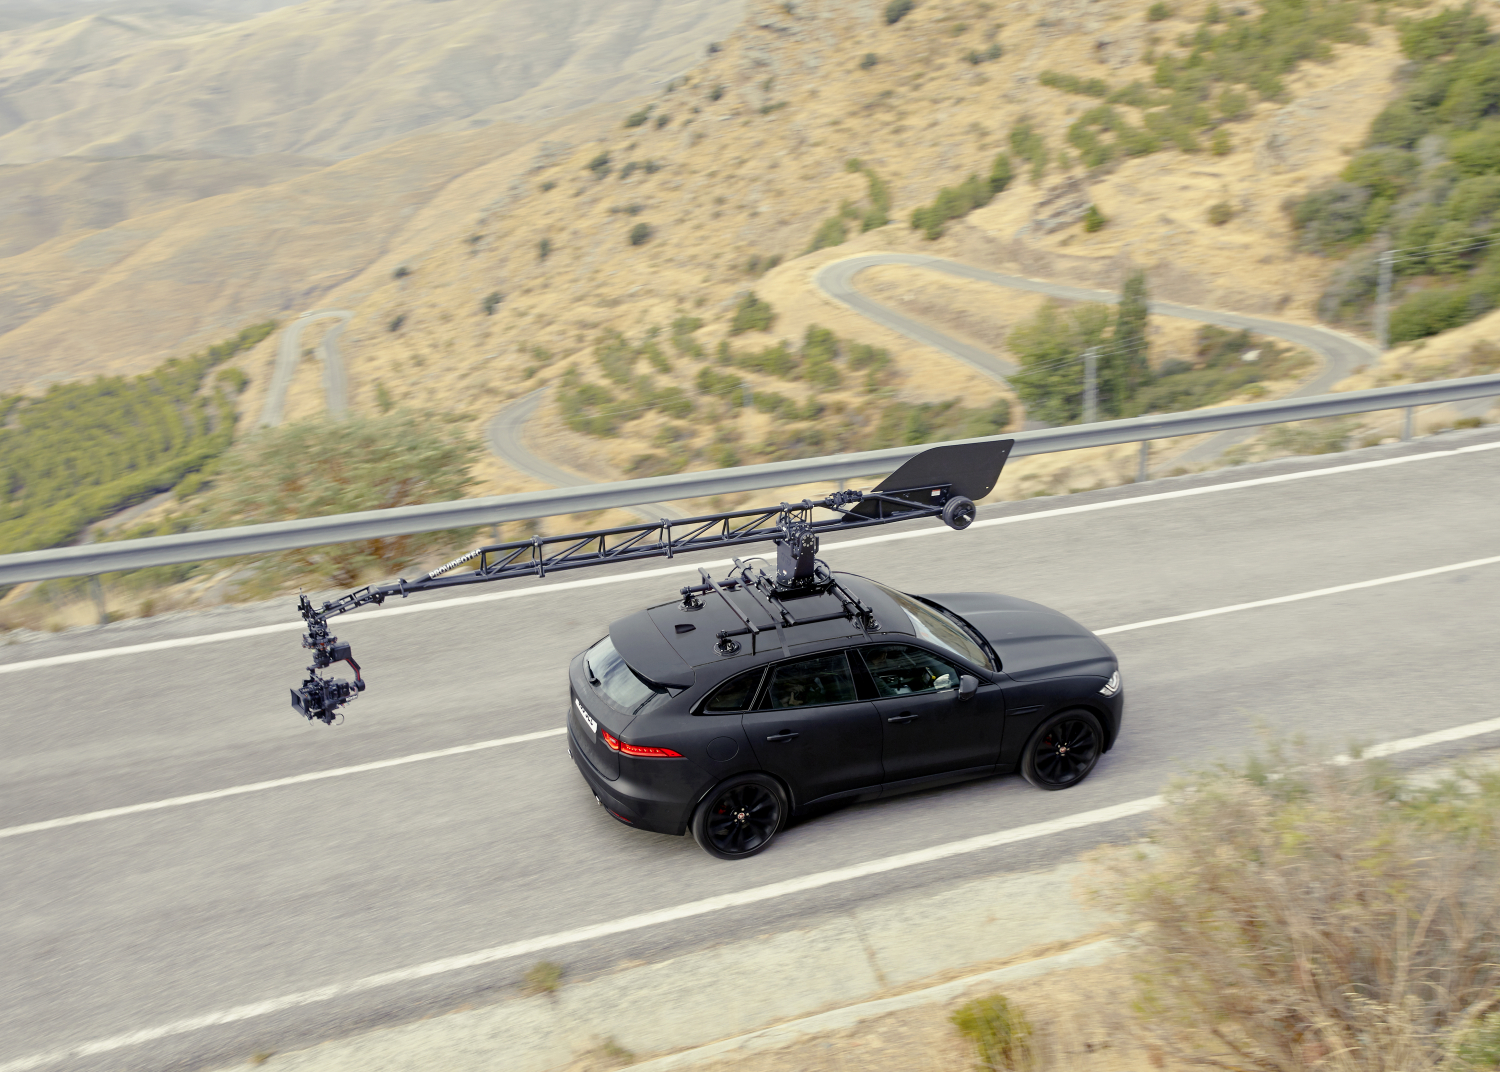 Jaguar F-pace Gives New-generation Canon Eos System Camera its First High-performance Work-out - Image 1